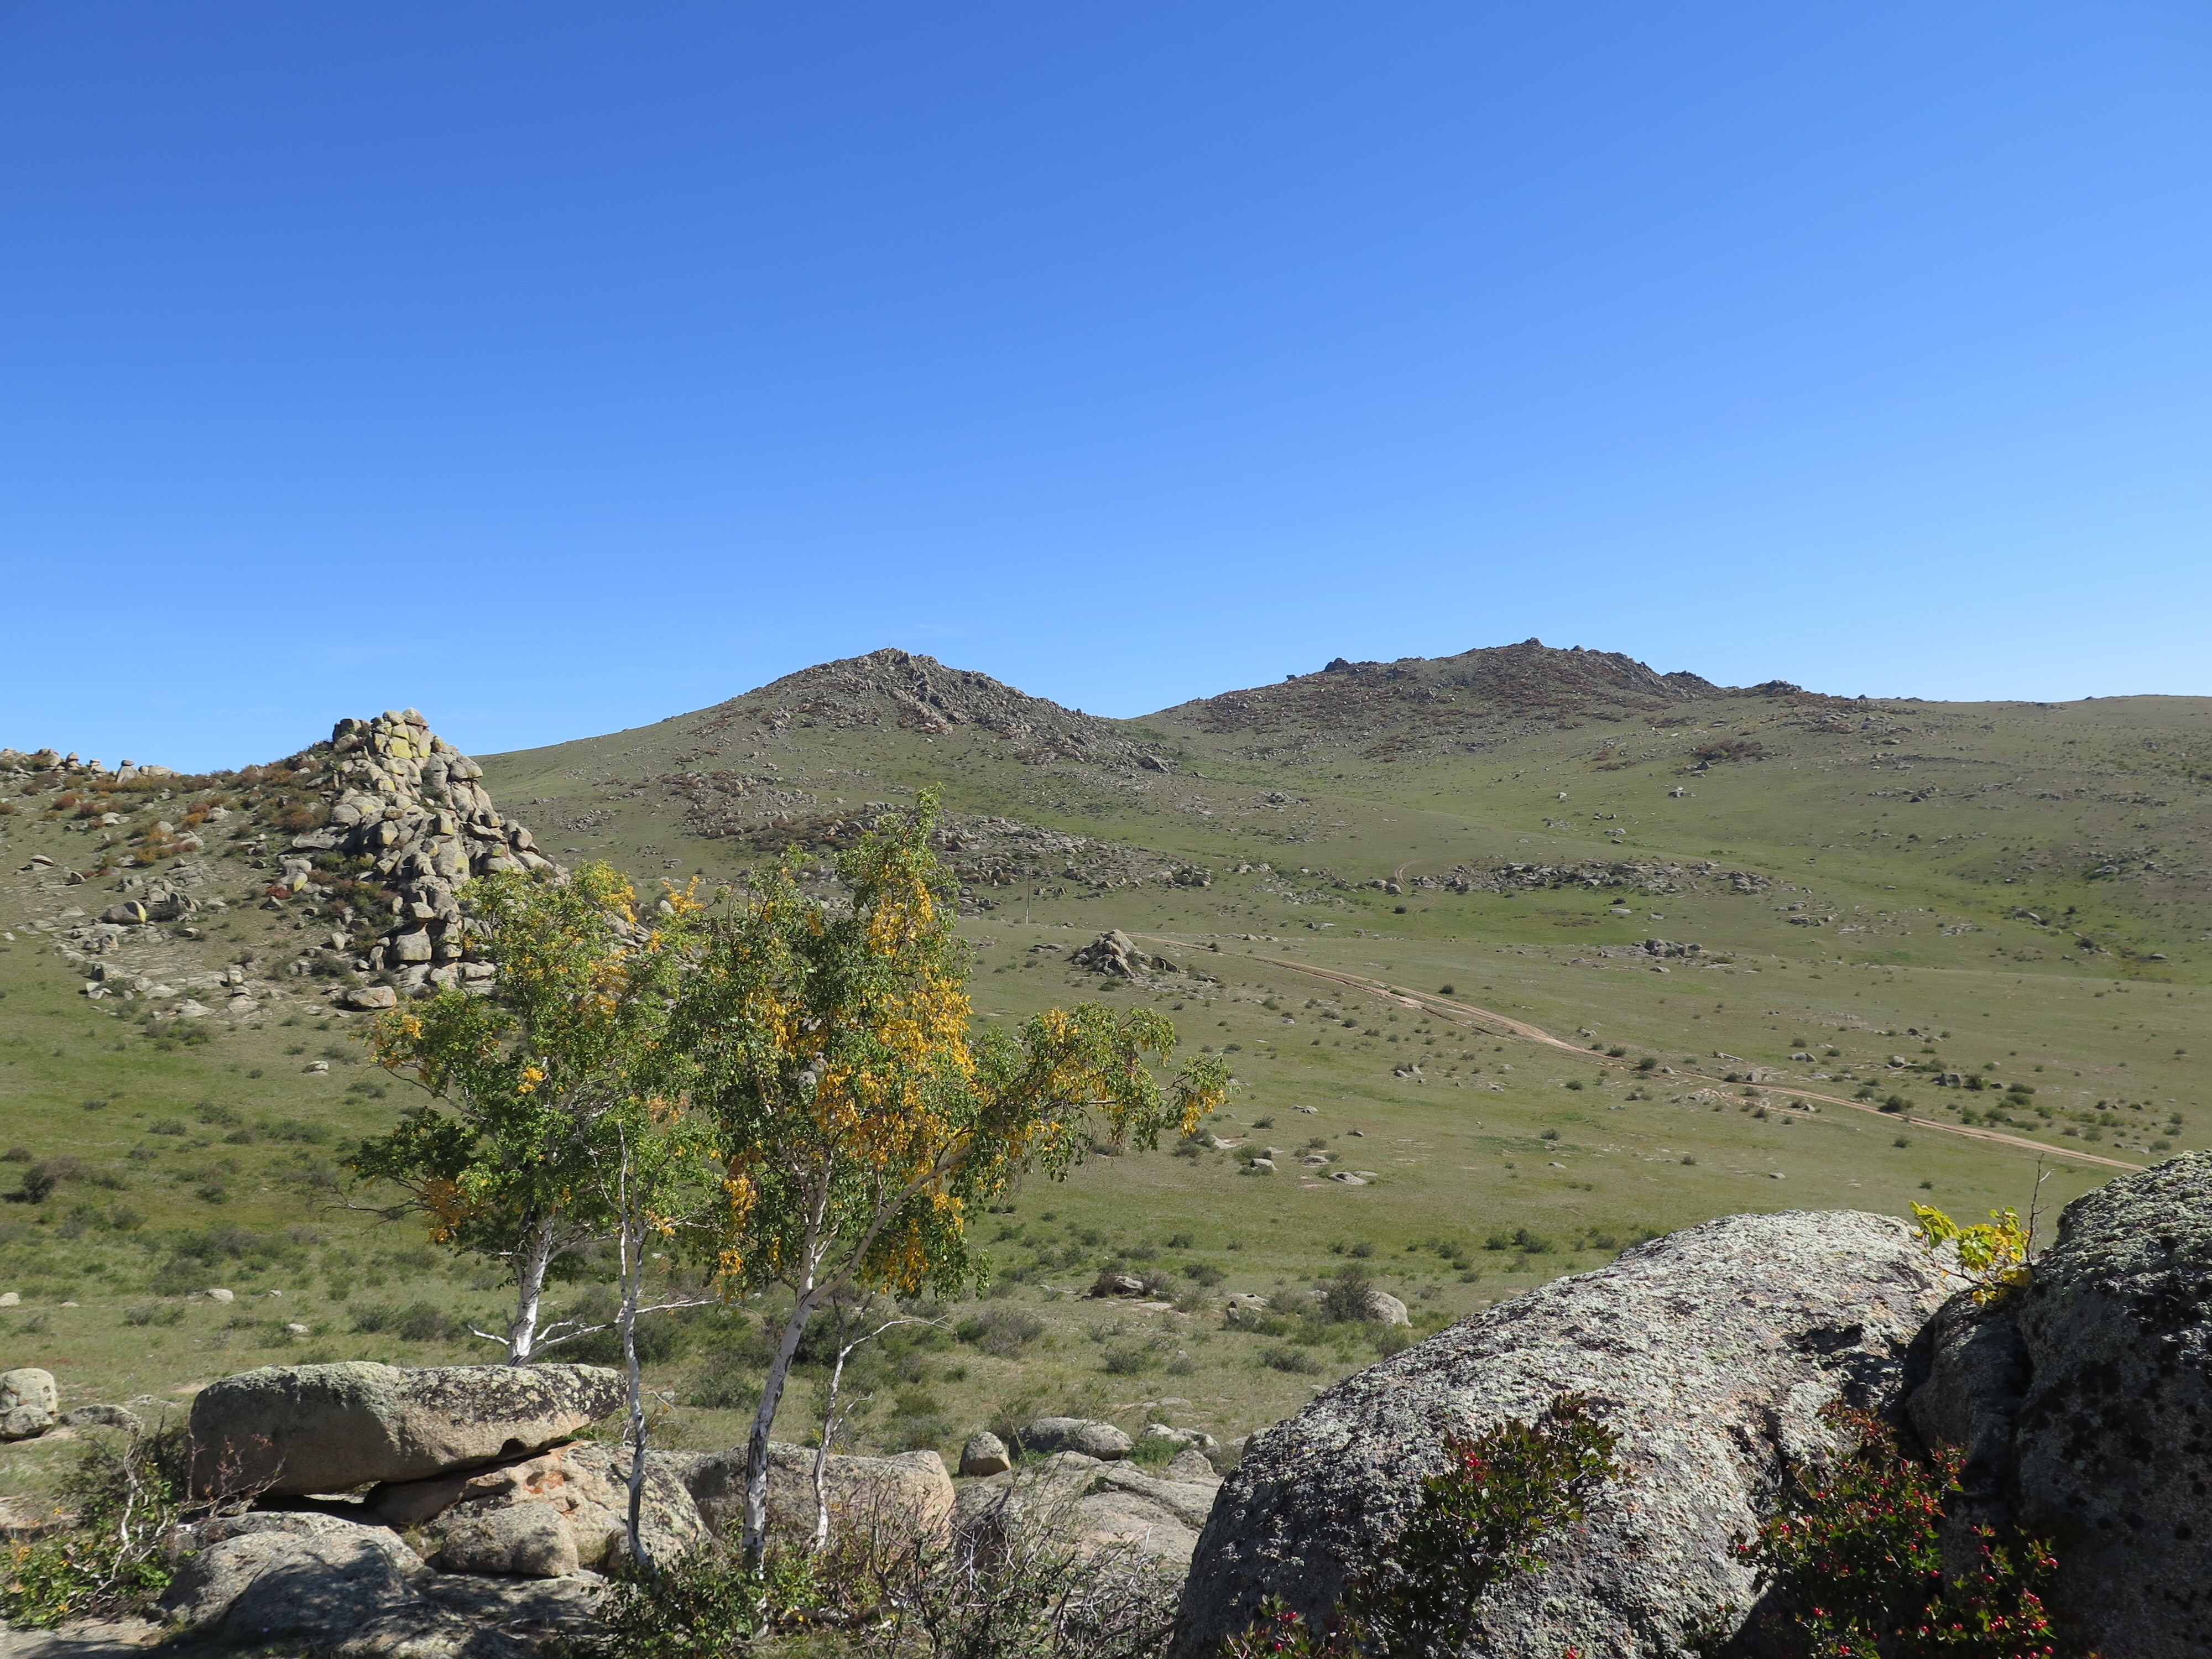 Just one of many beautiful landscapes. This is the view back down to the truck from where we observed the takhi.